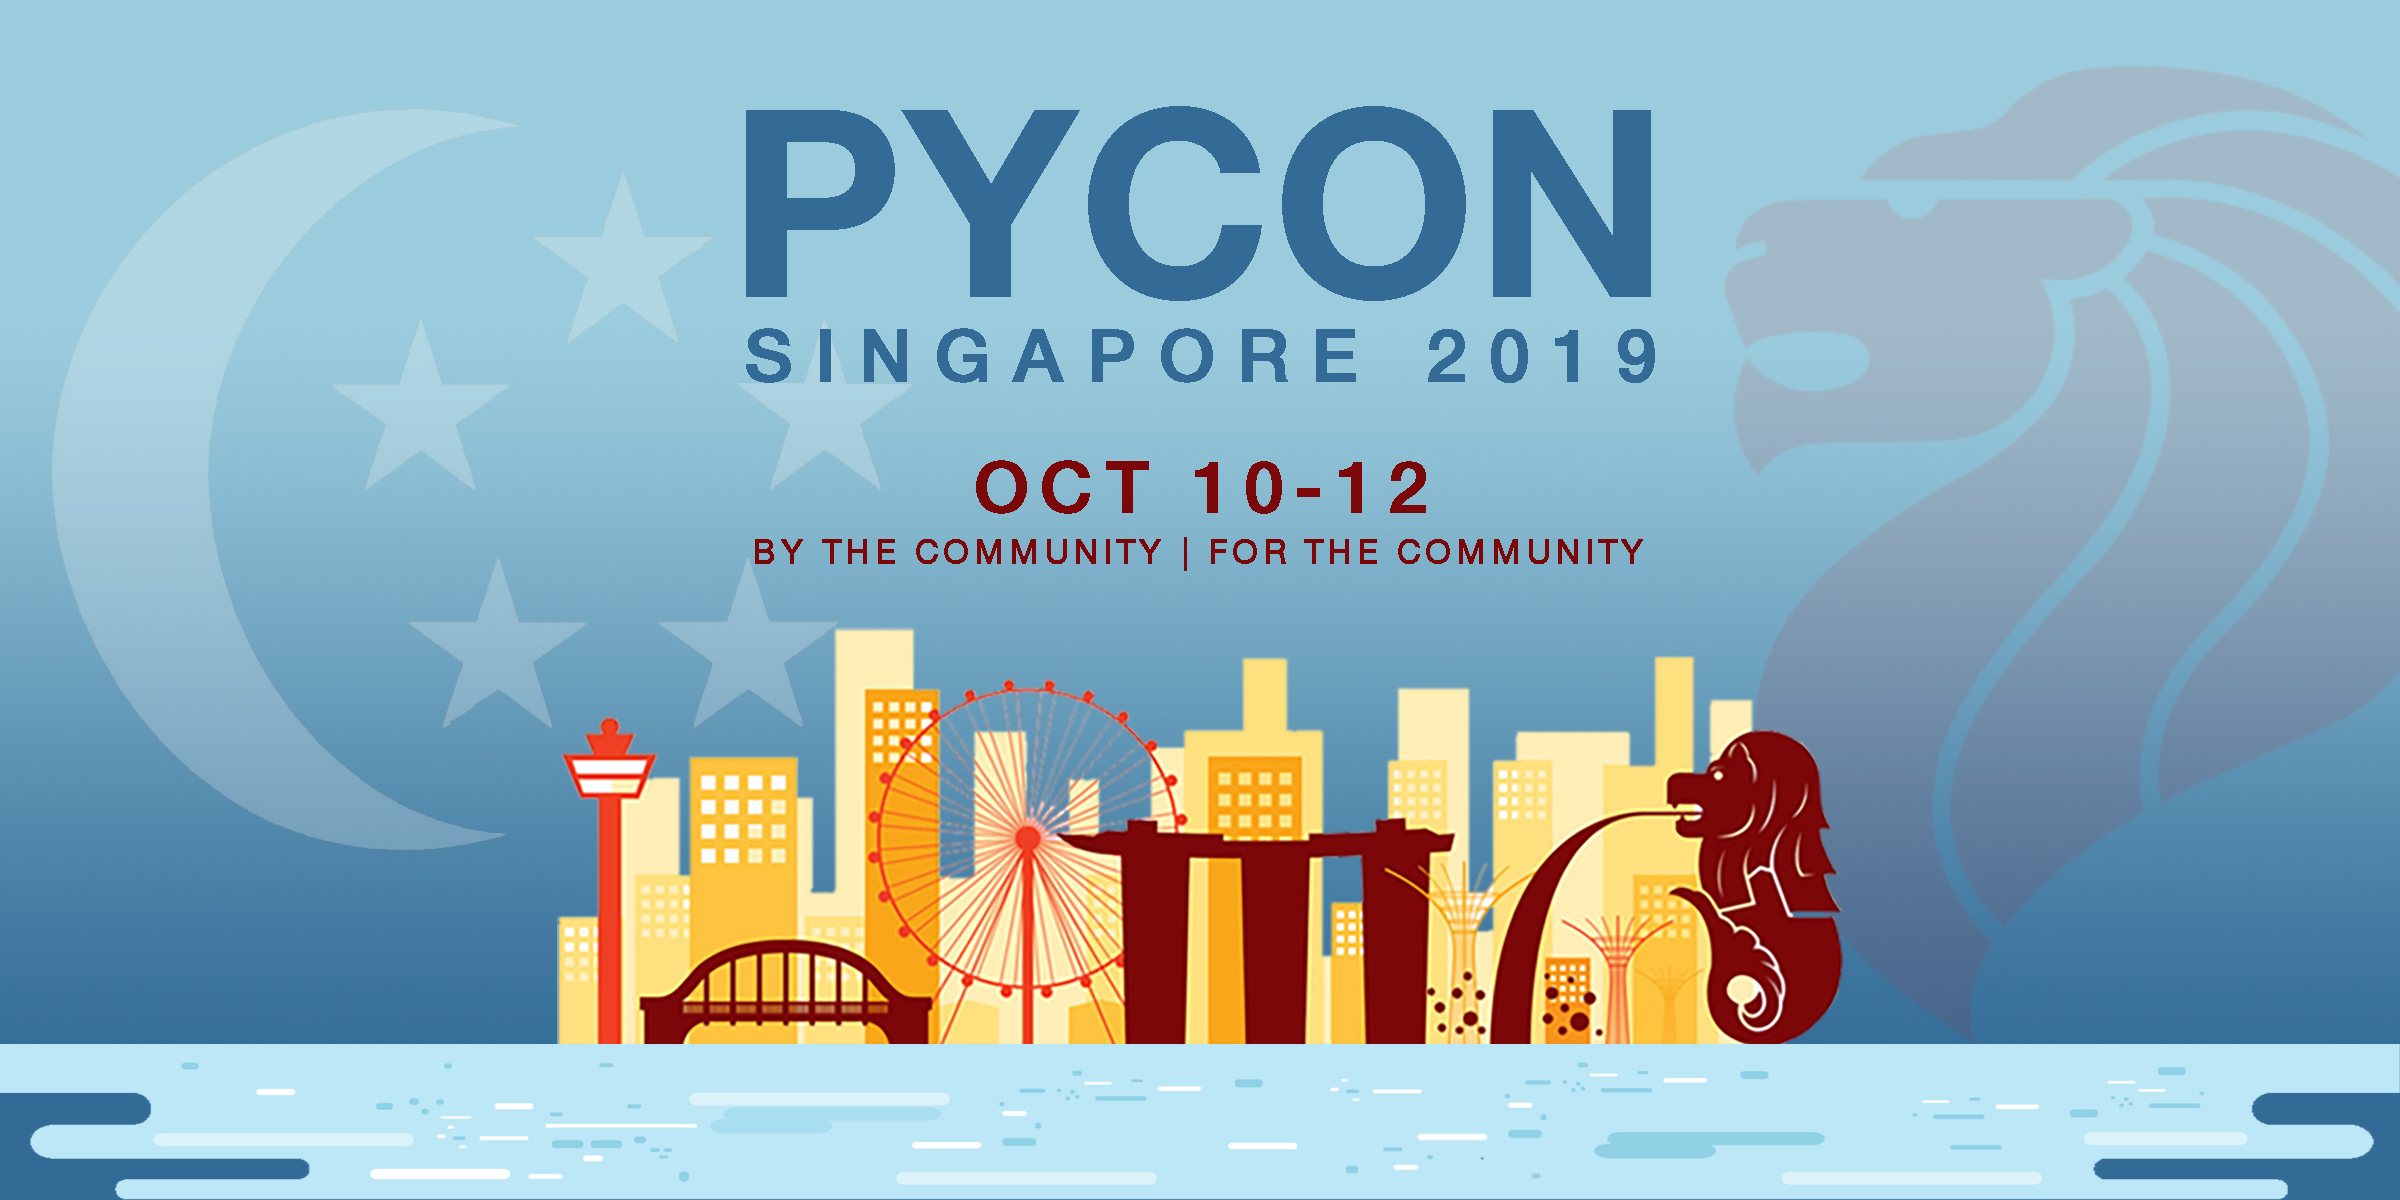 PyCon Singapore 2019 Banner Image